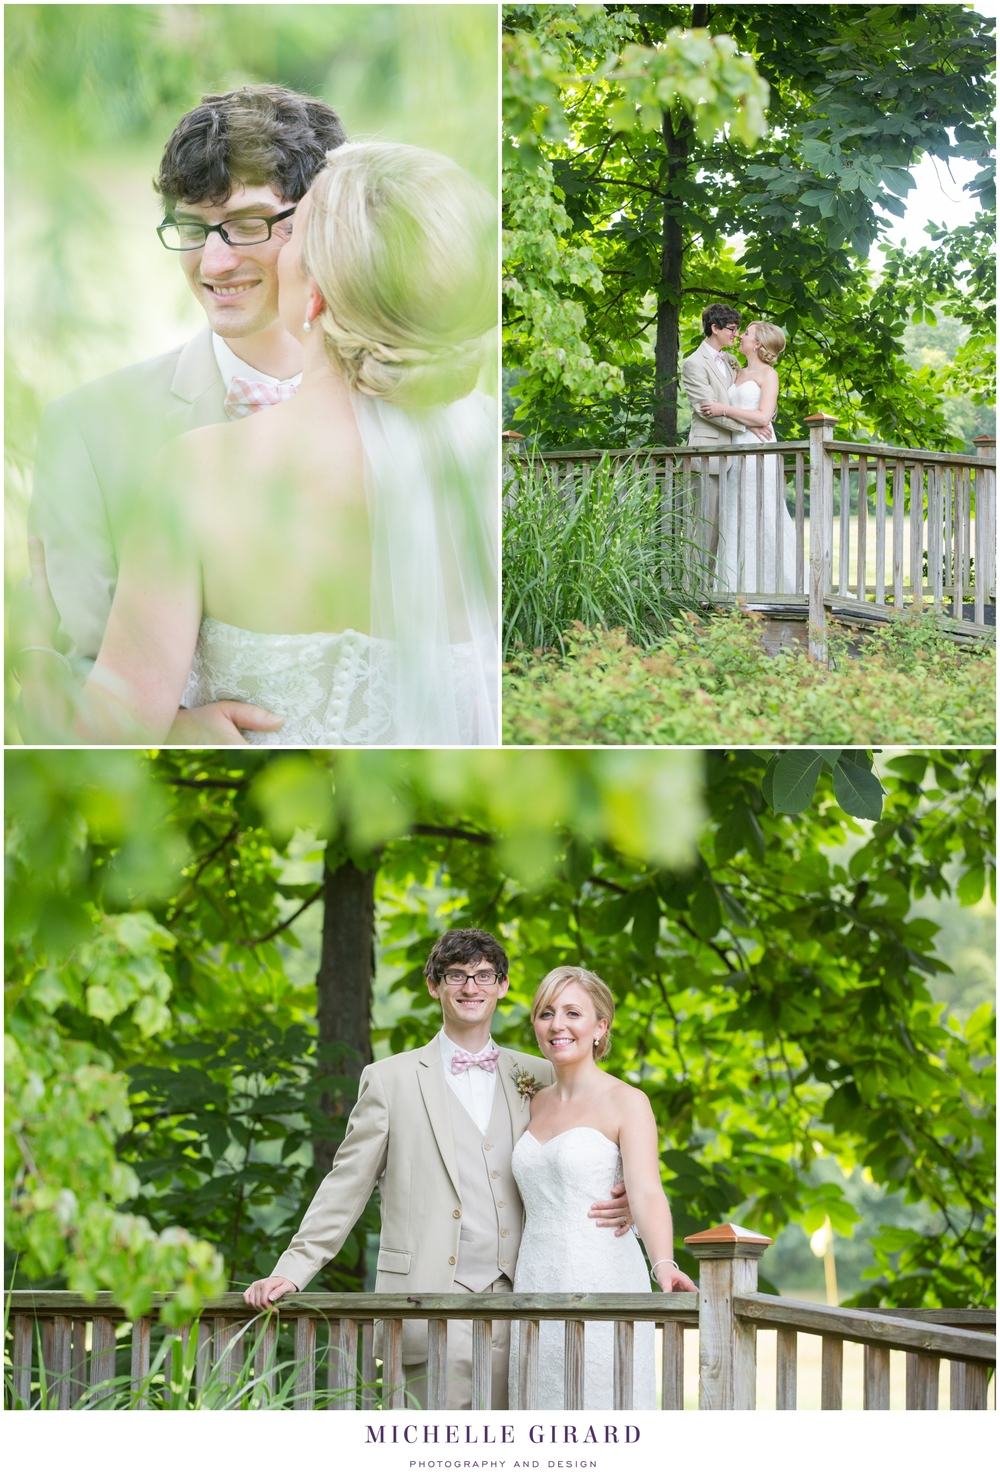 FarmsCountryClub_SummerWedding_MichelleGirardPhotography14.jpg